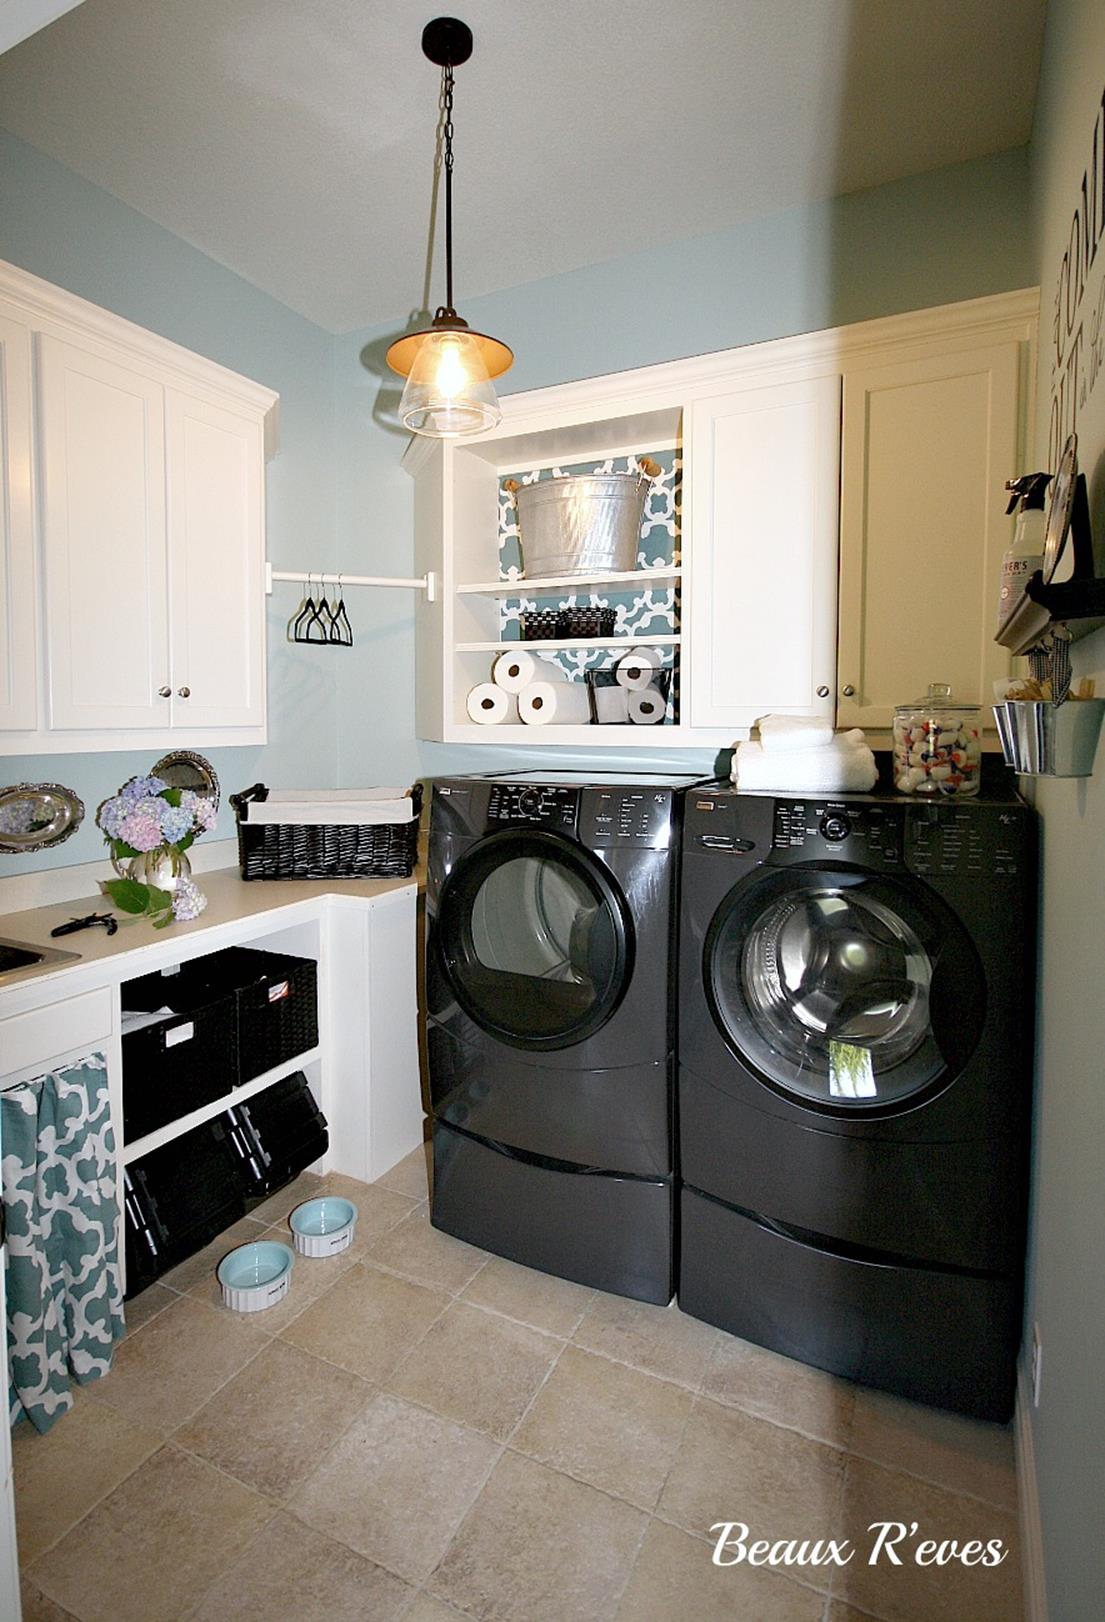 Light Fixtures Ideas For Laundry Room 23